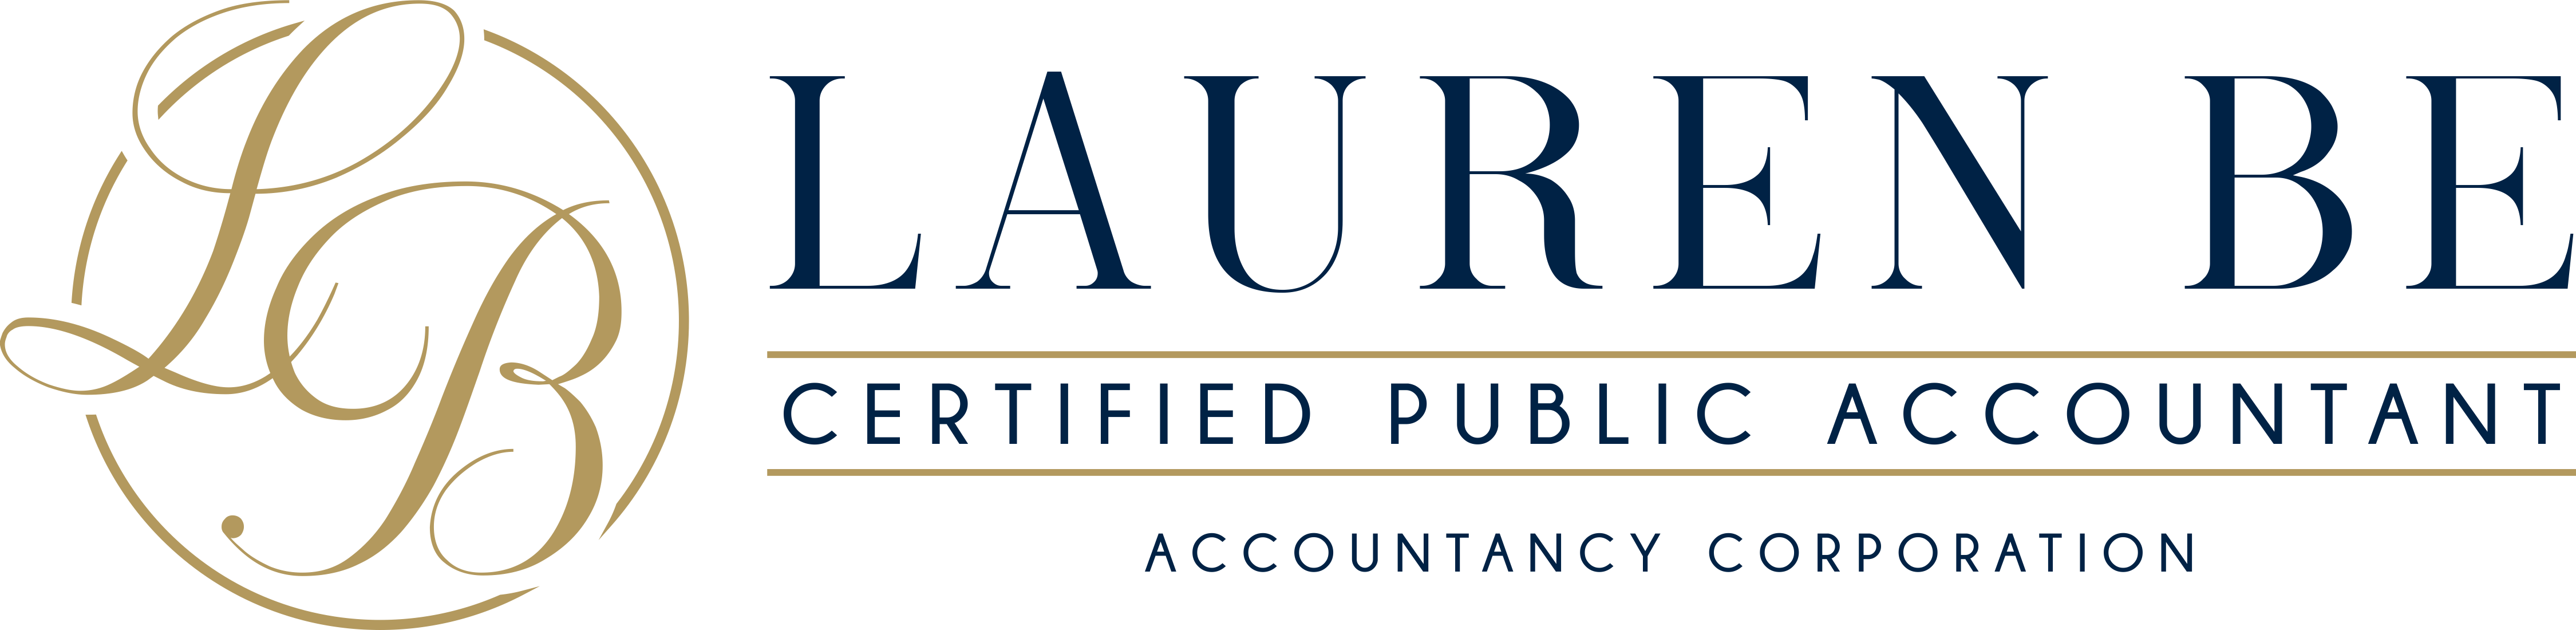 Visalia, CA CPA Firm | Estate & Trust Tax Services Page | Lauren Be, CPA